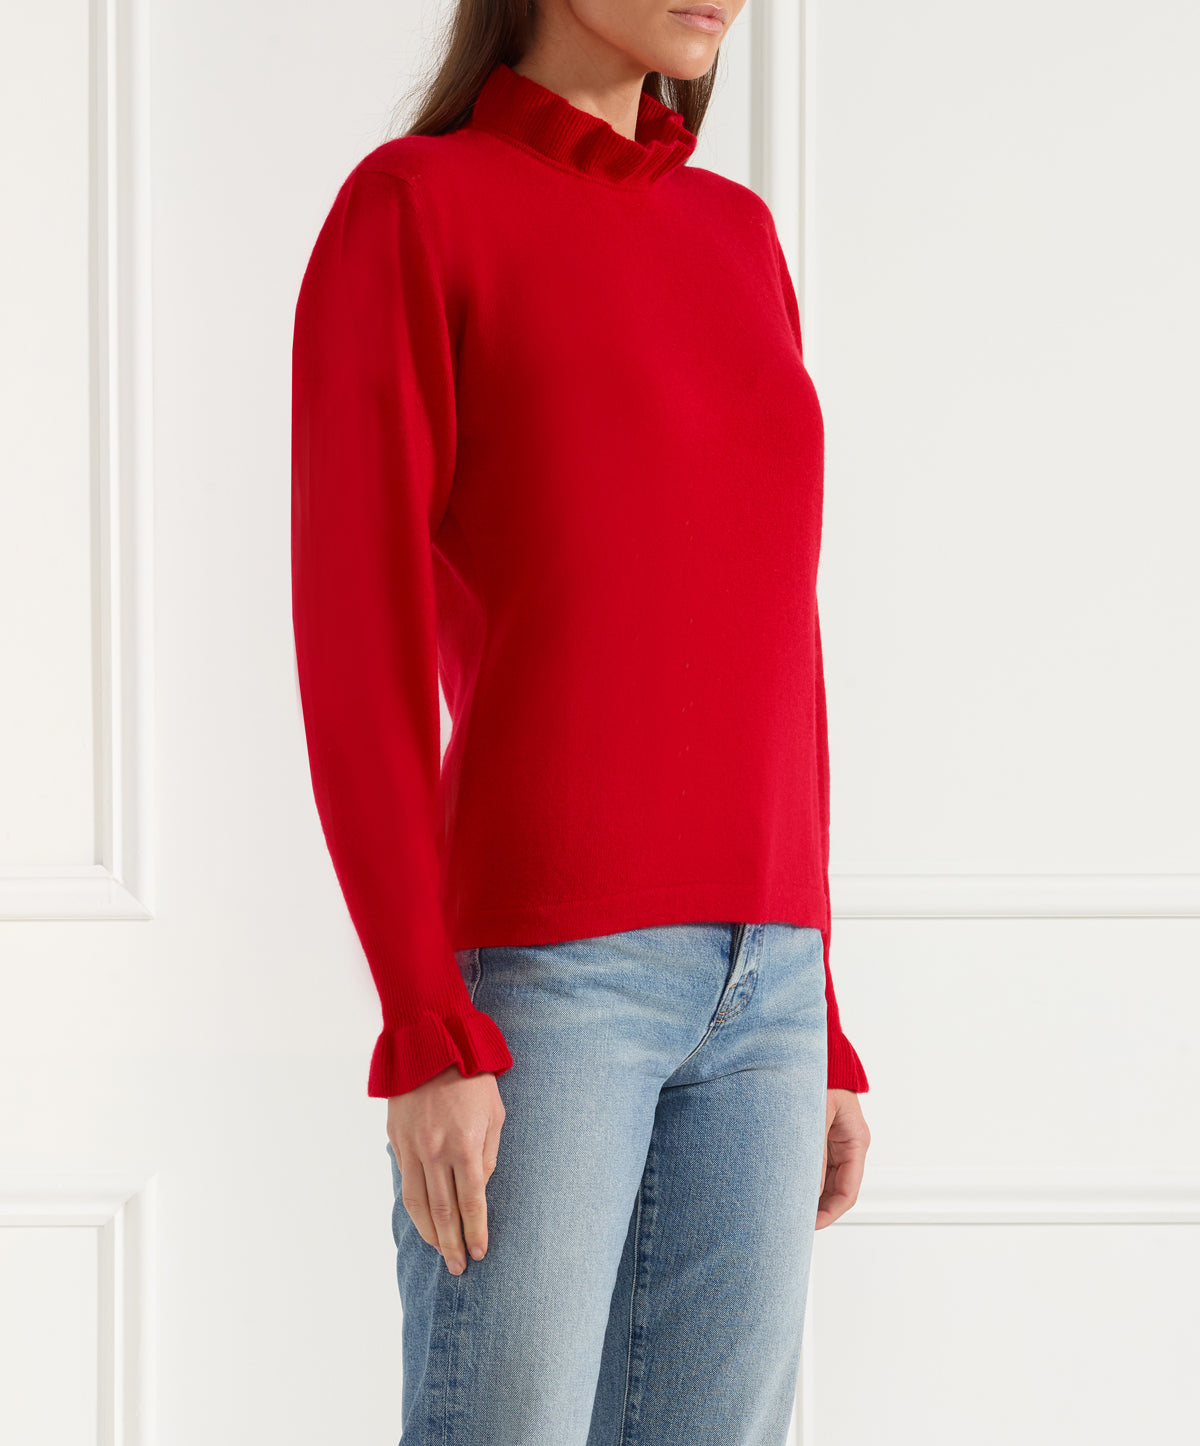 Pie Crust (Frill-Neck/Frill Sleeve) Sweater